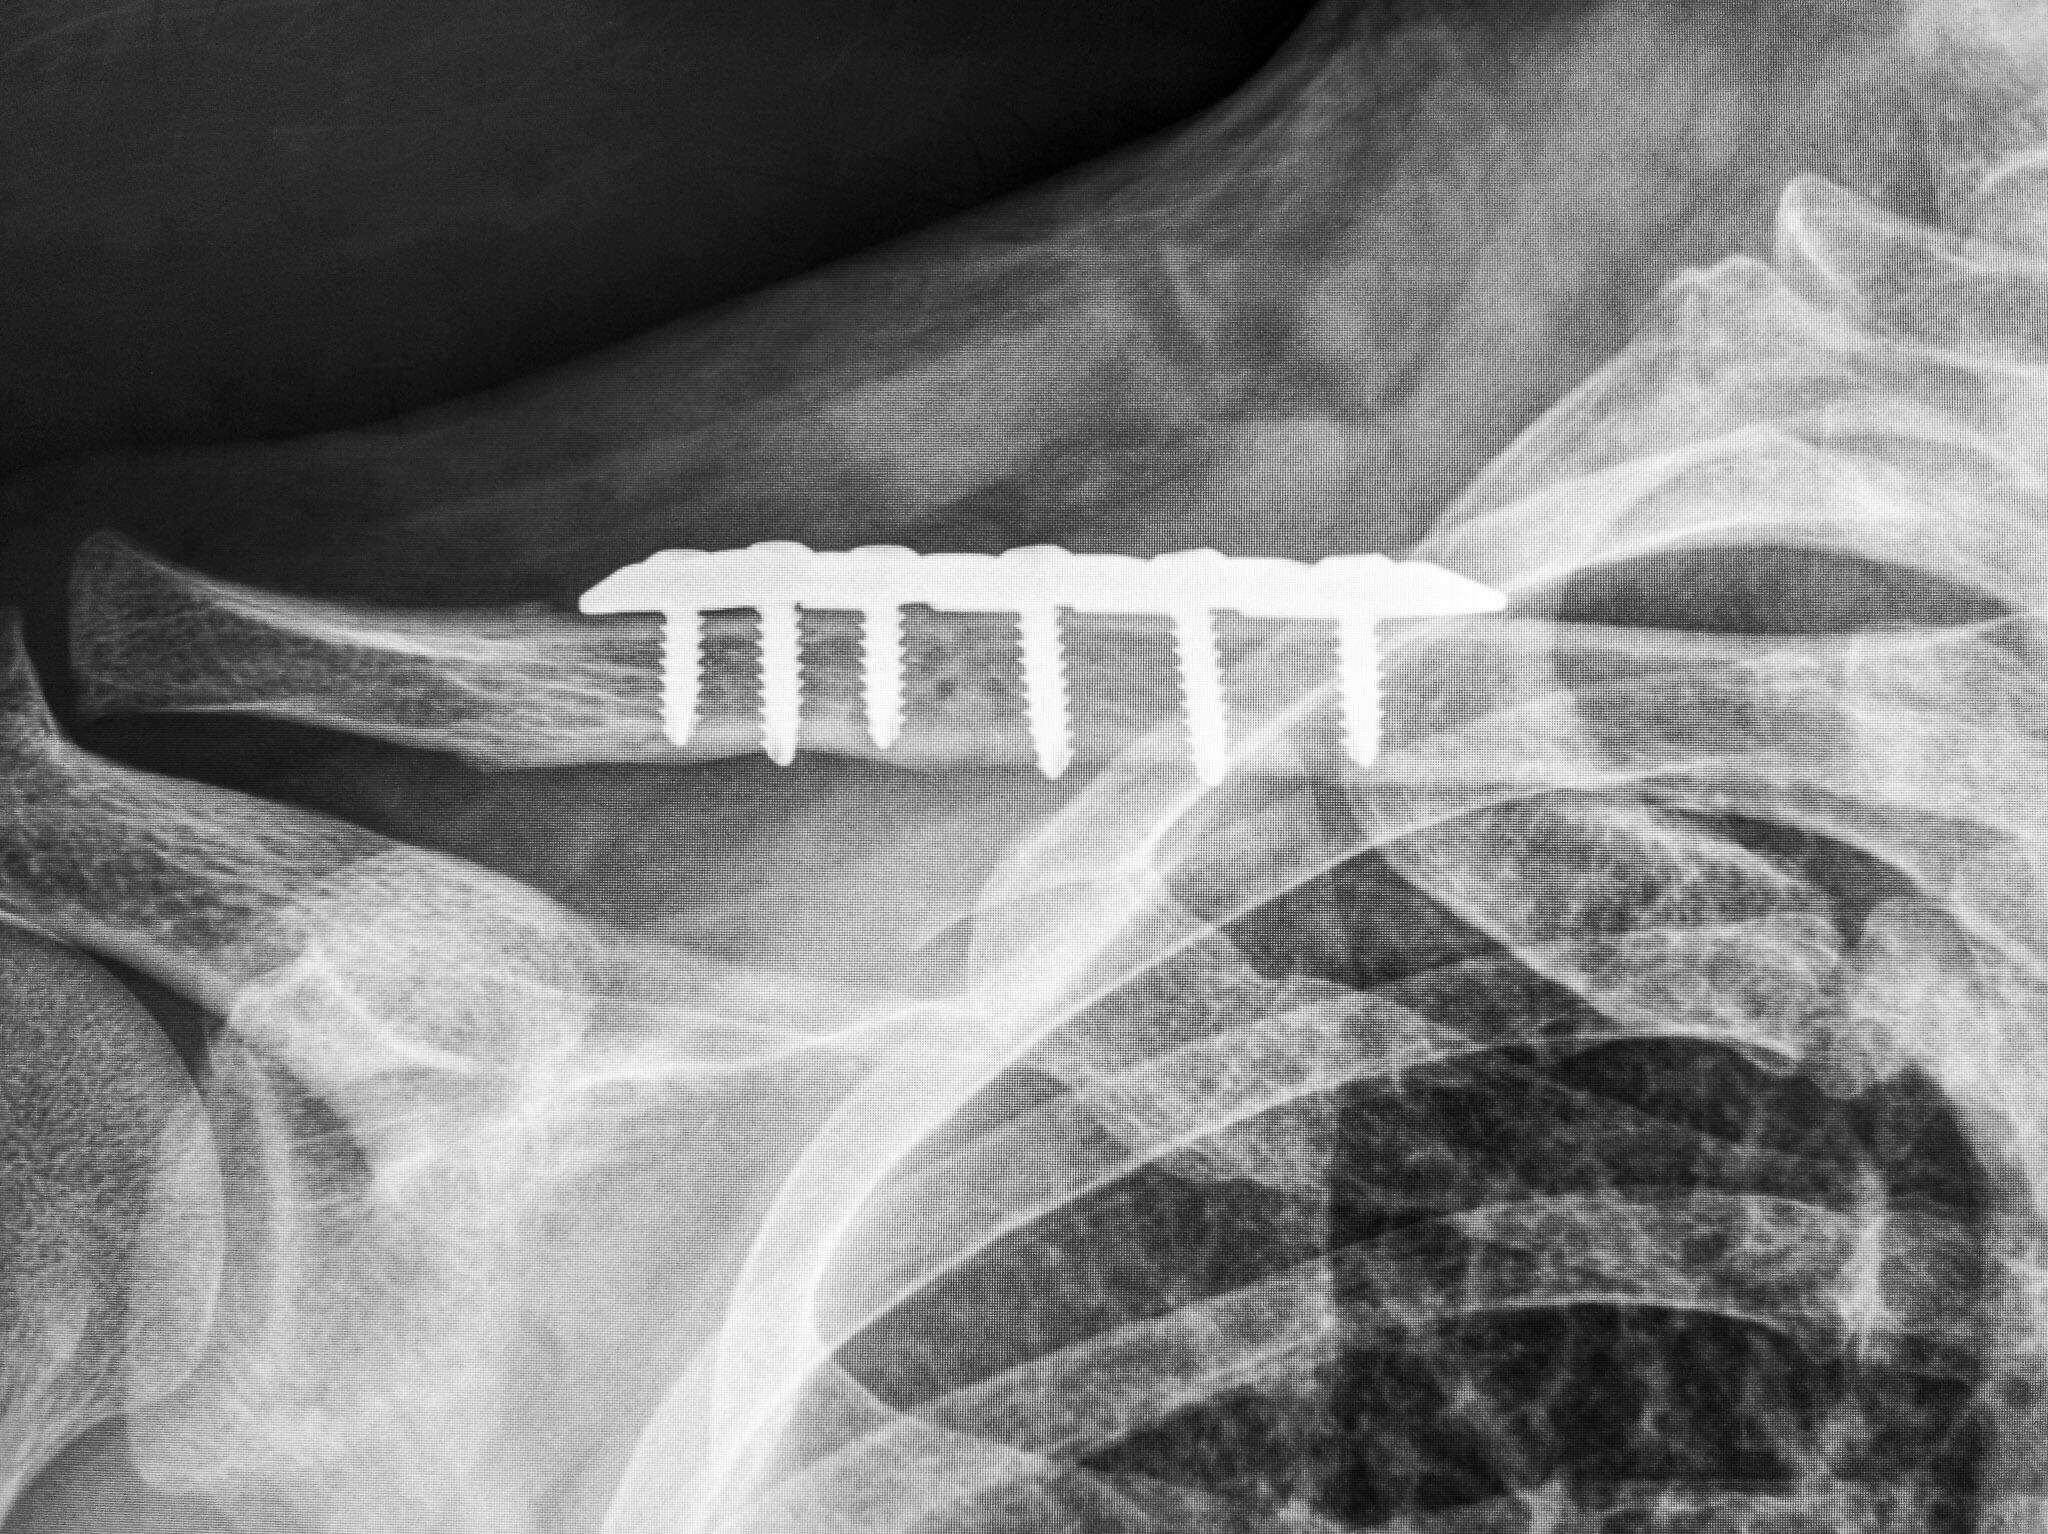 X-ray of collarbone with the stainless steel plate and screws